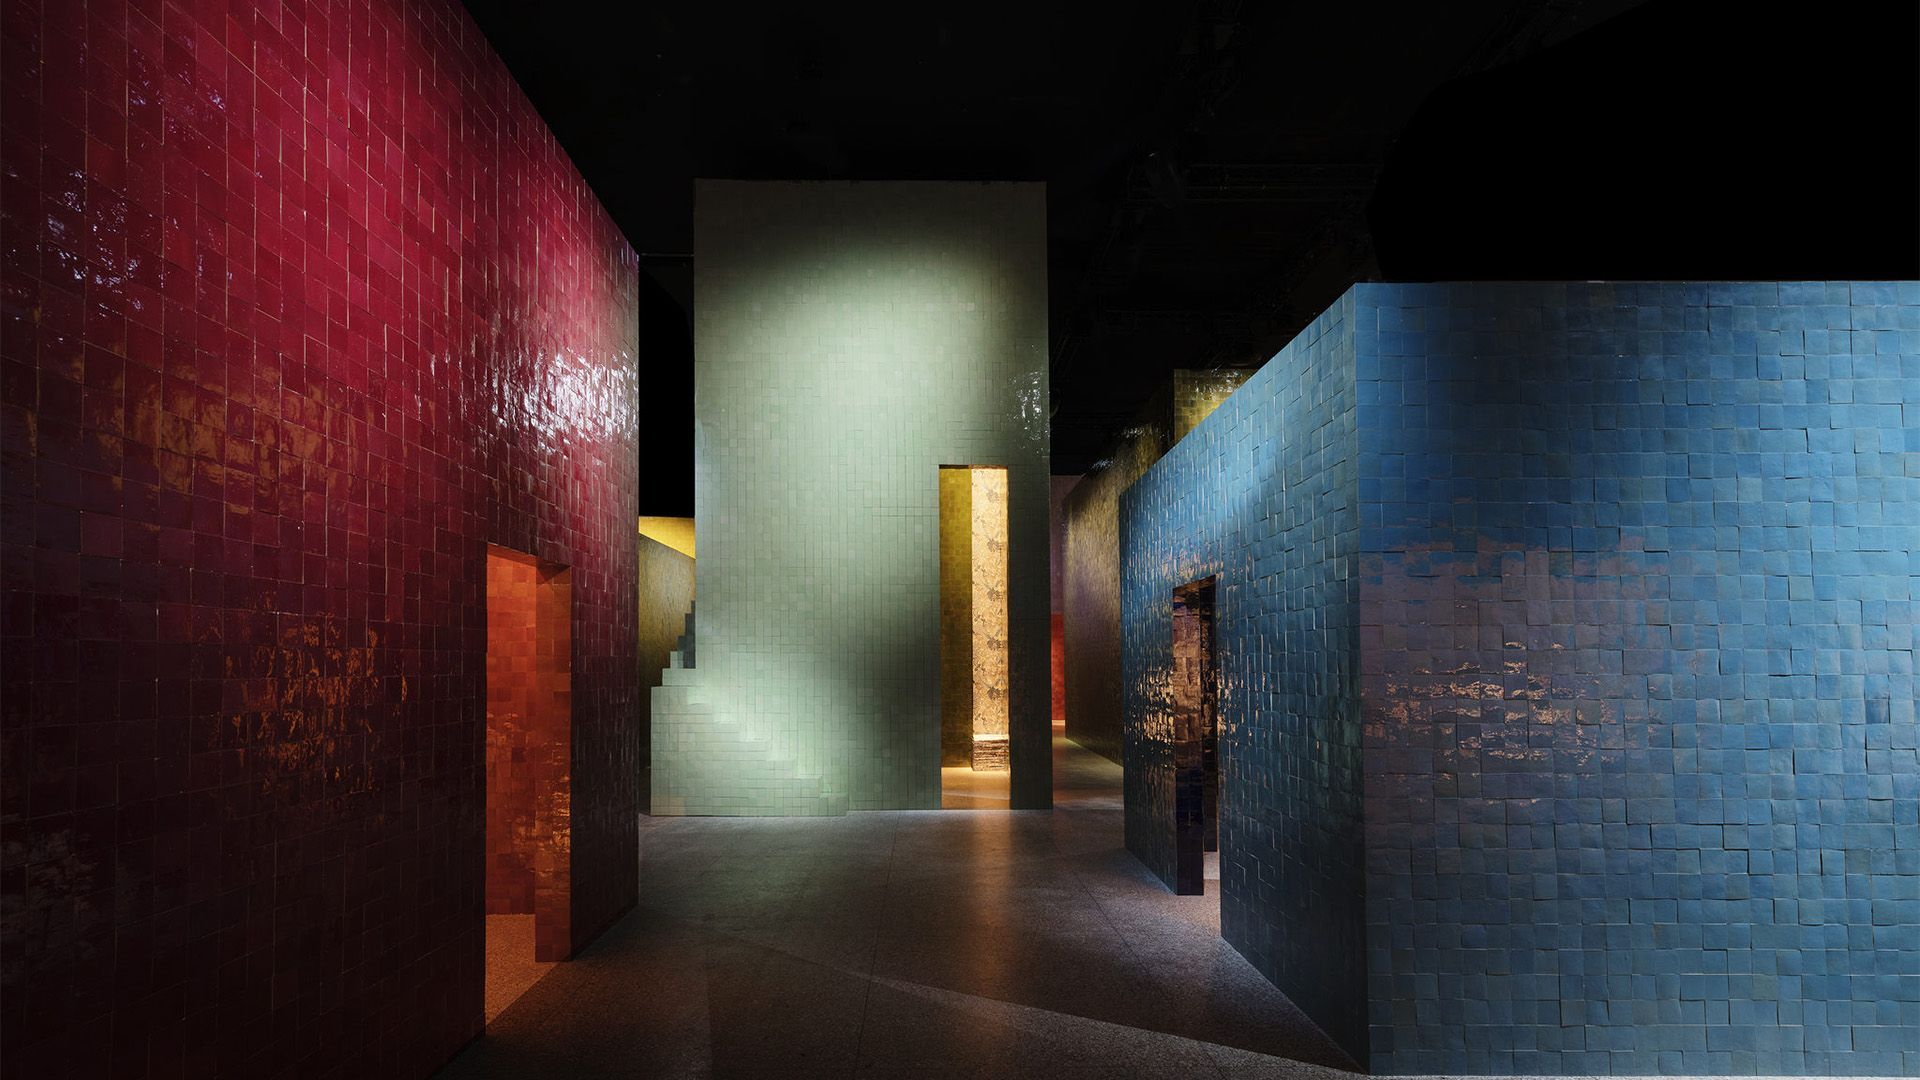 Amazing hermès presentation at the salone del mobile in milan with